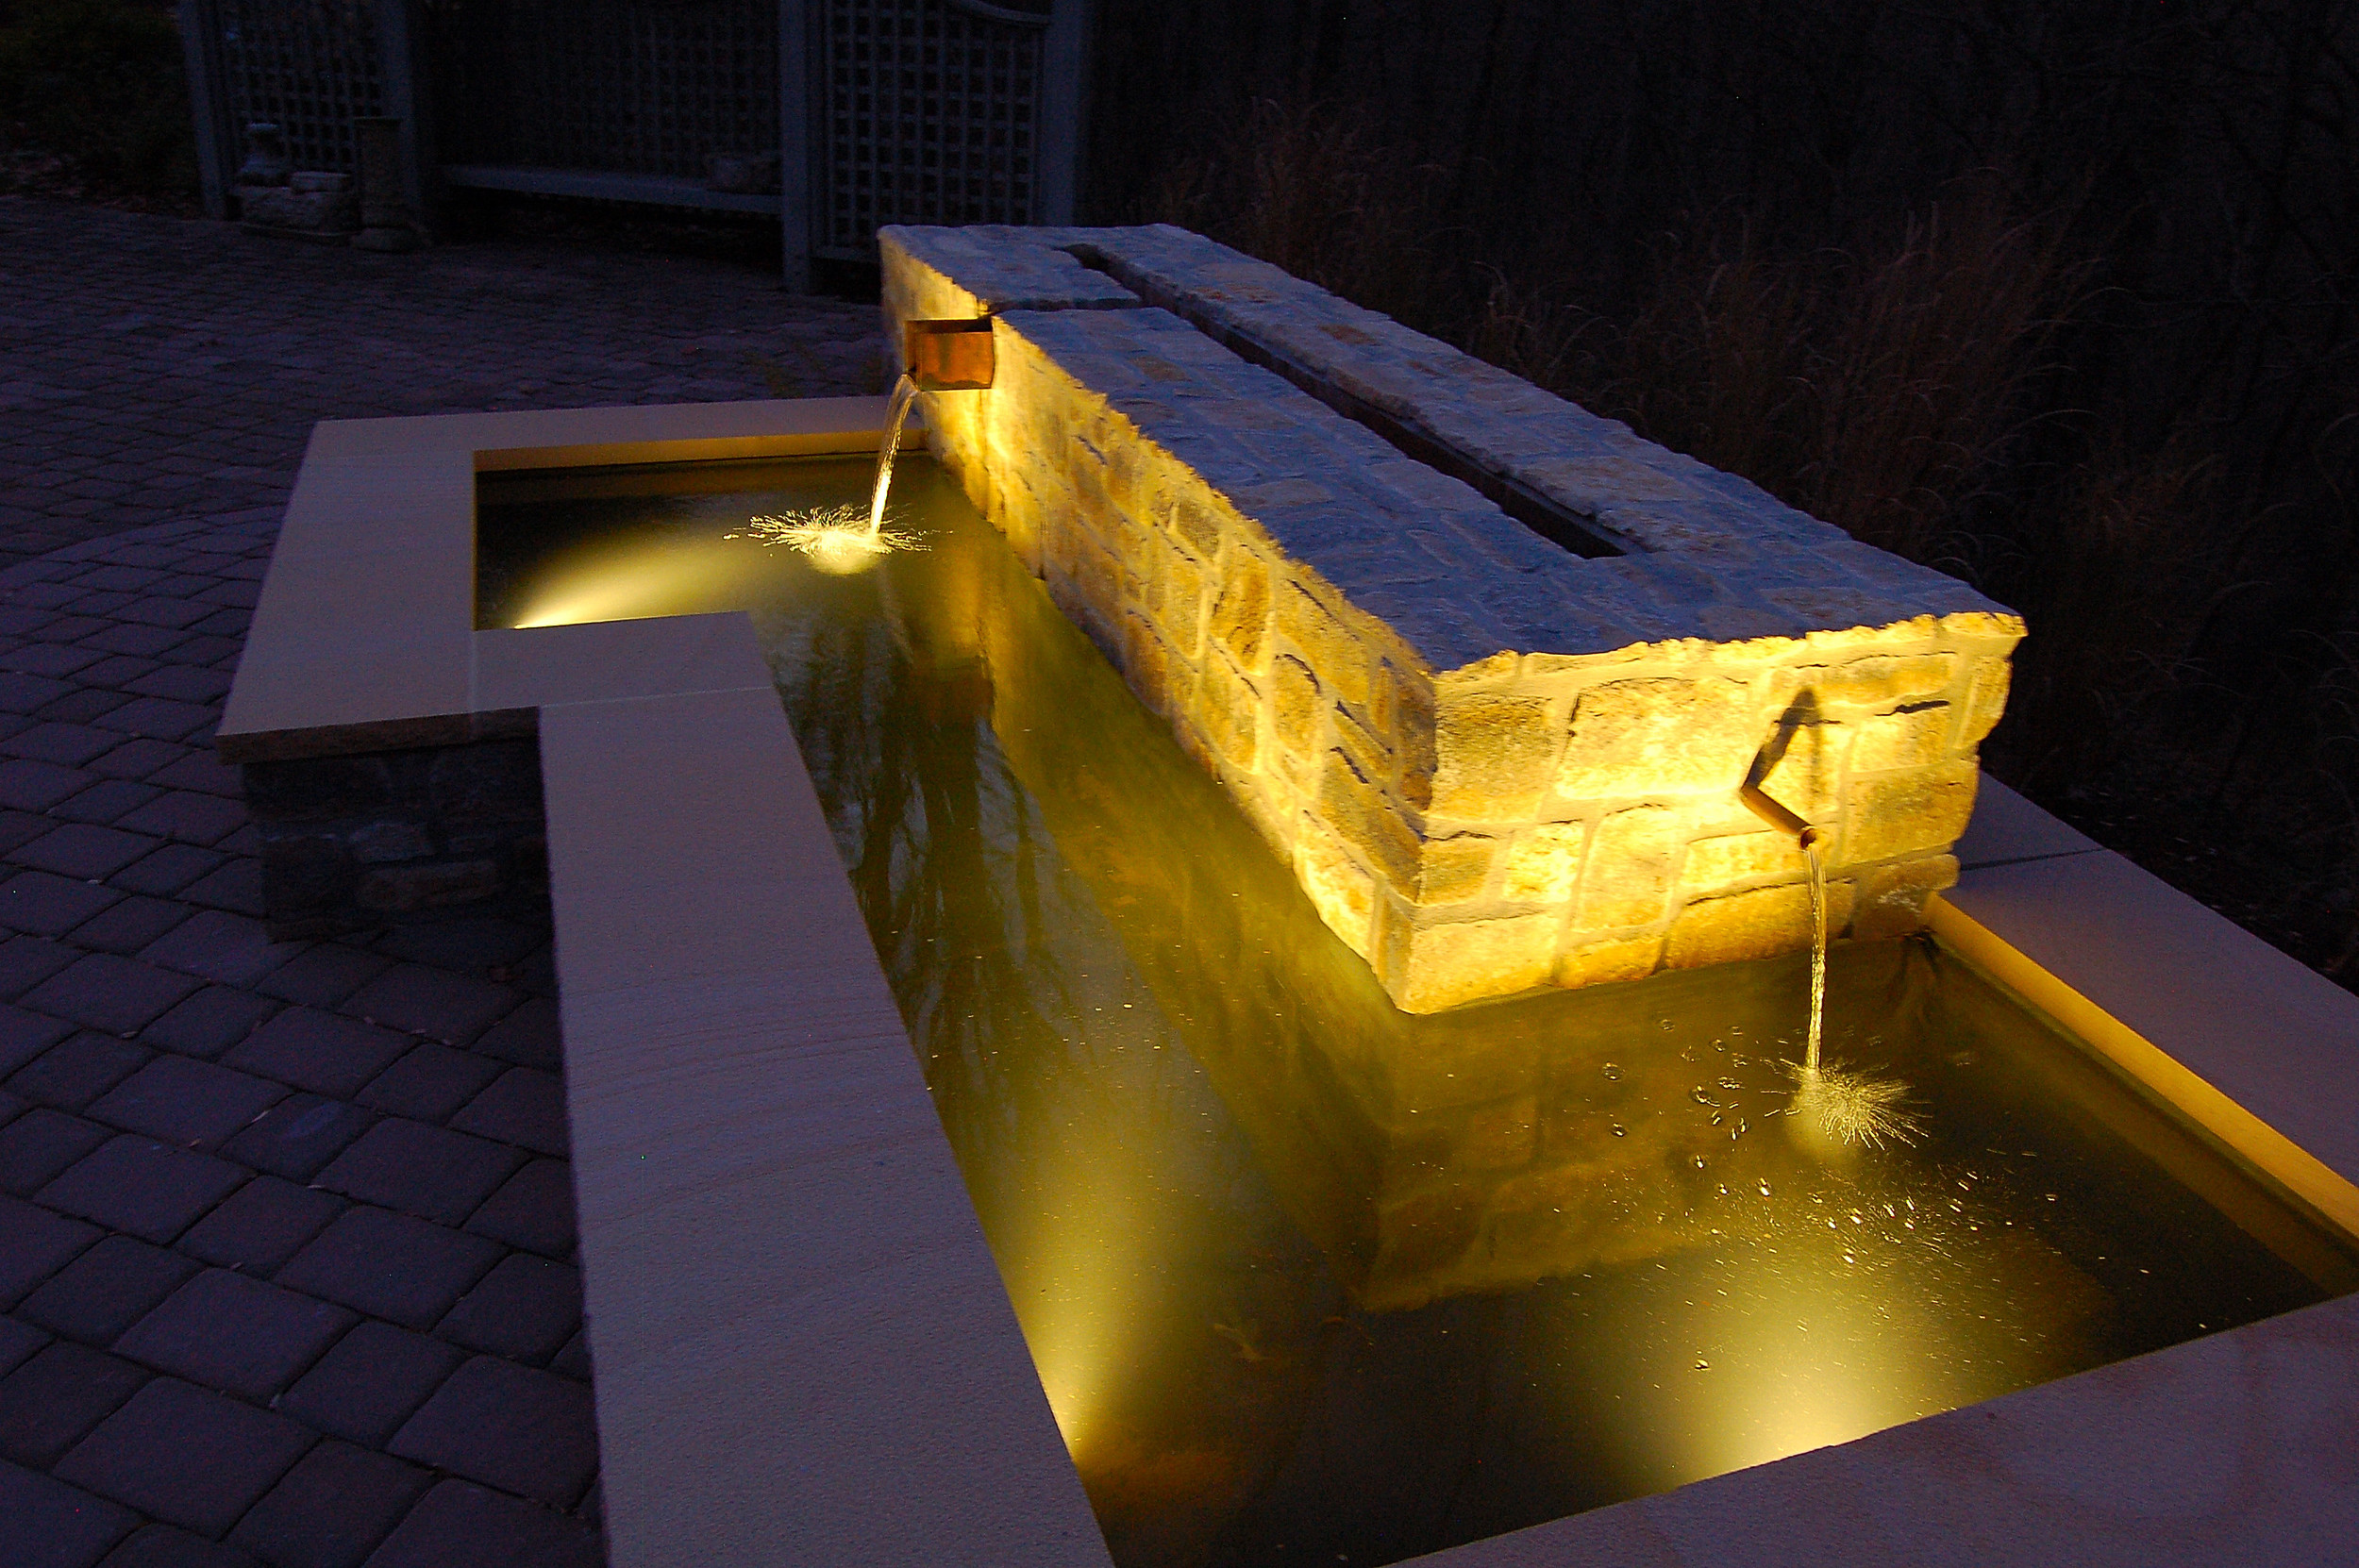 Lighted stone water feature at night